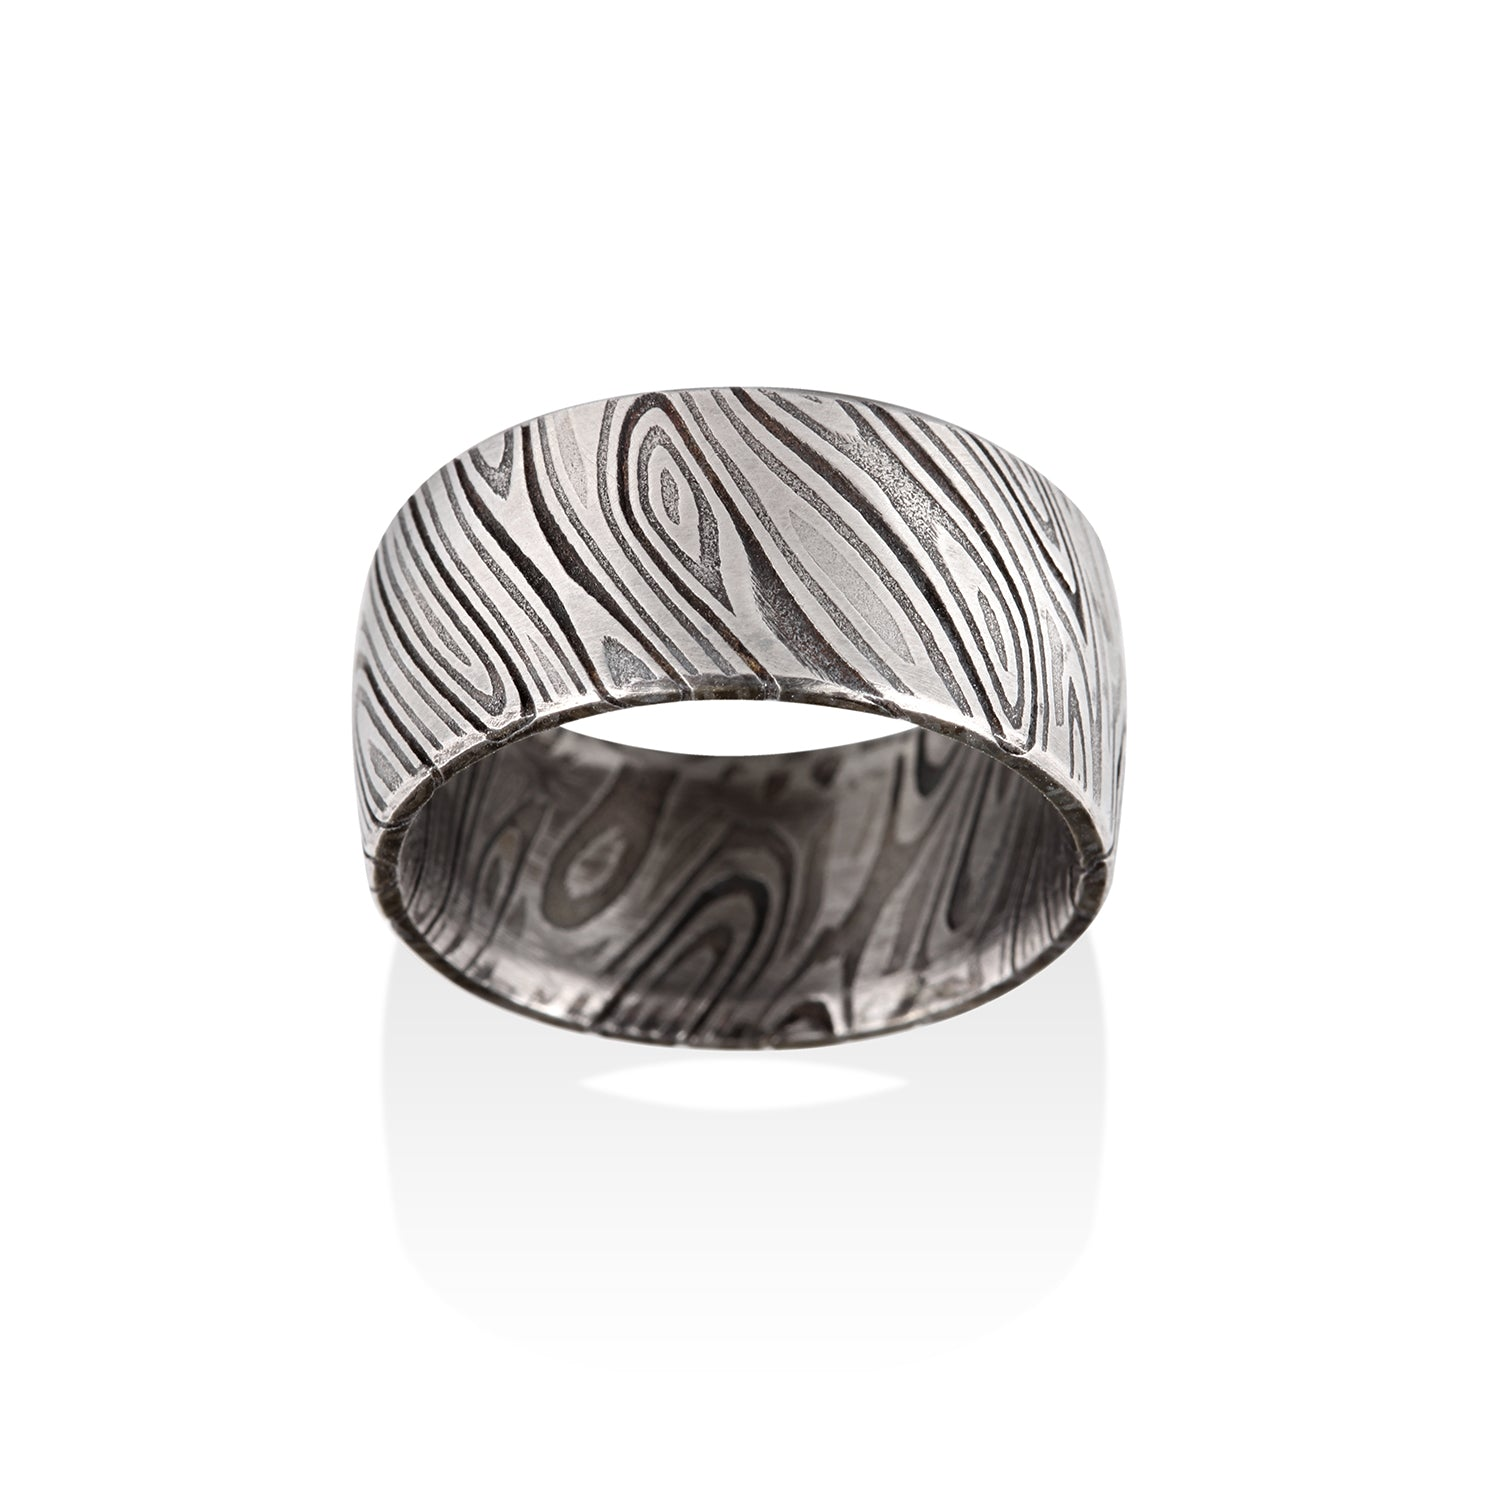 Triple White Damascus Steel Ring by Chris Ploof - Talisman Collection Fine Jewelers